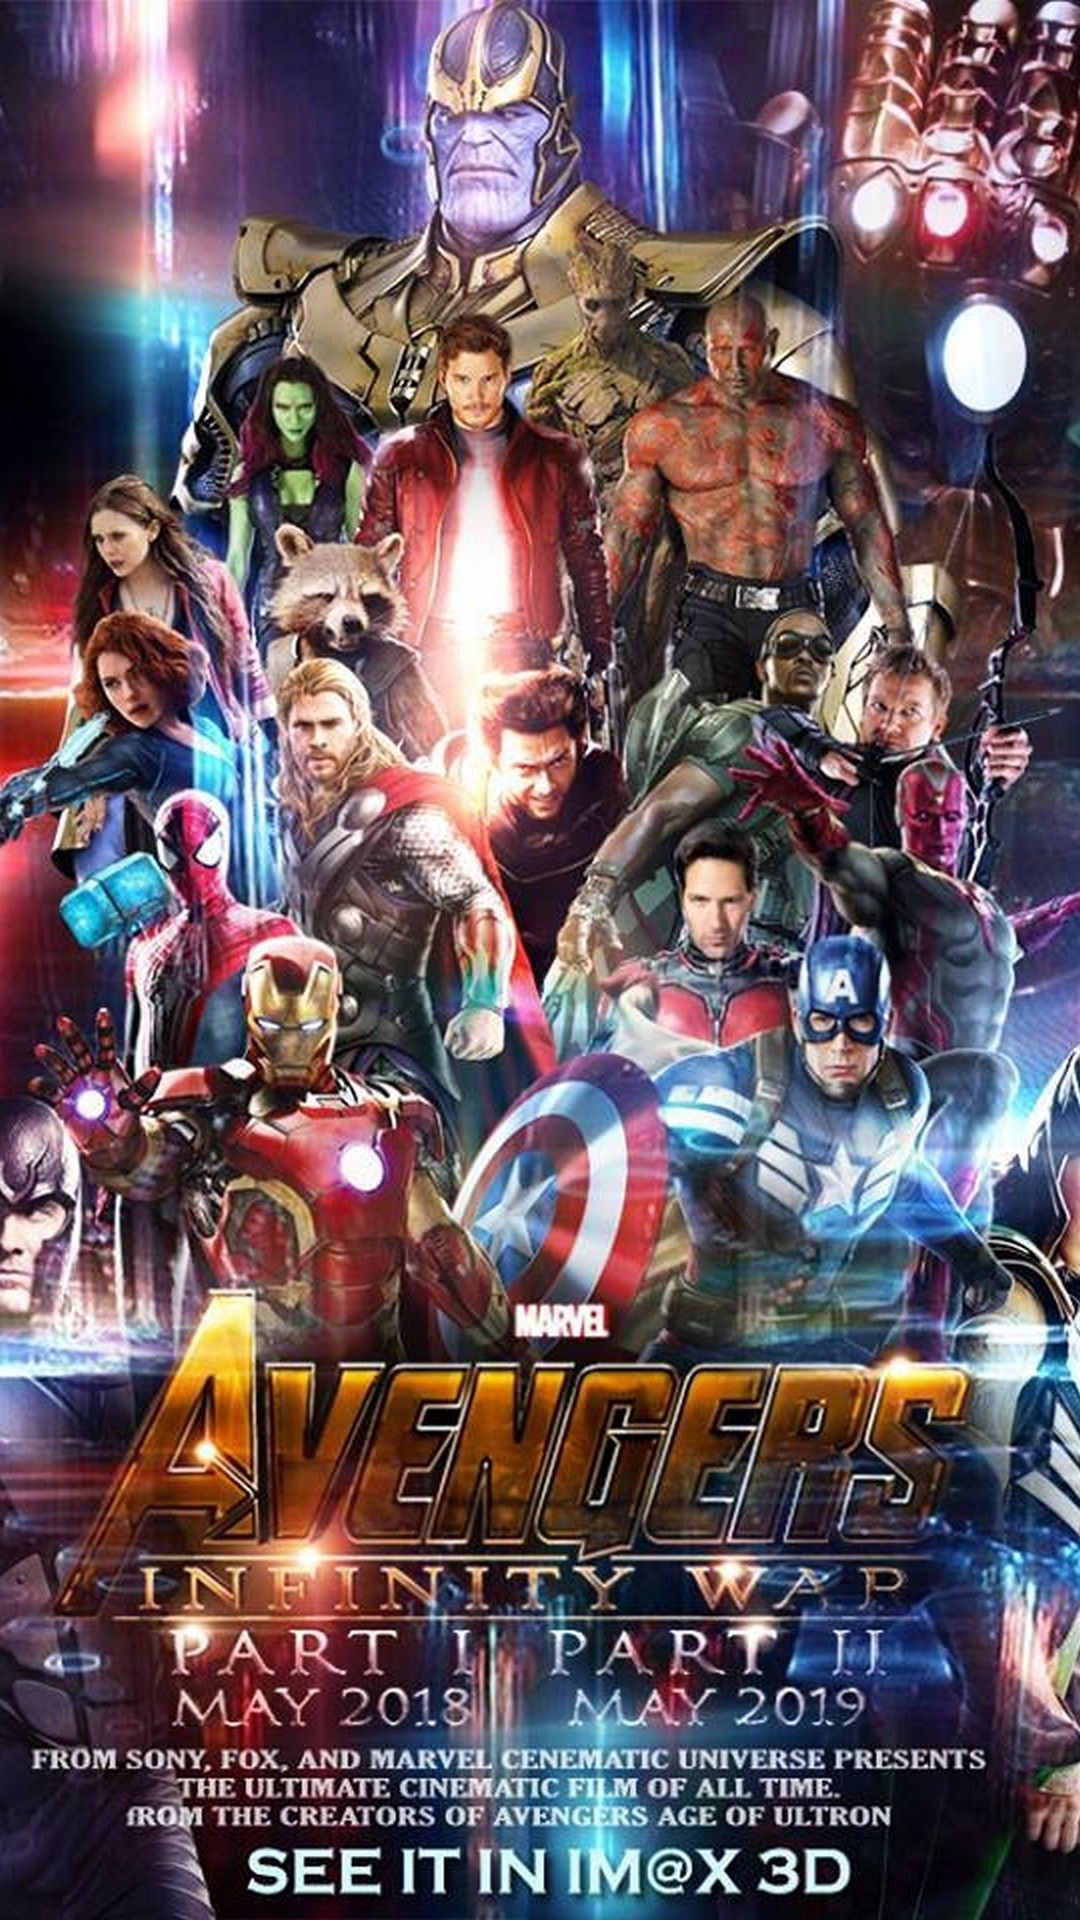 Visit Avengers Hd Wallpaper Android On High Definition Wallpaper At Rainbowwallpaper Info Pin If You Like It In 2020 Avengers Infinity War Avengers Avengers Wallpaper